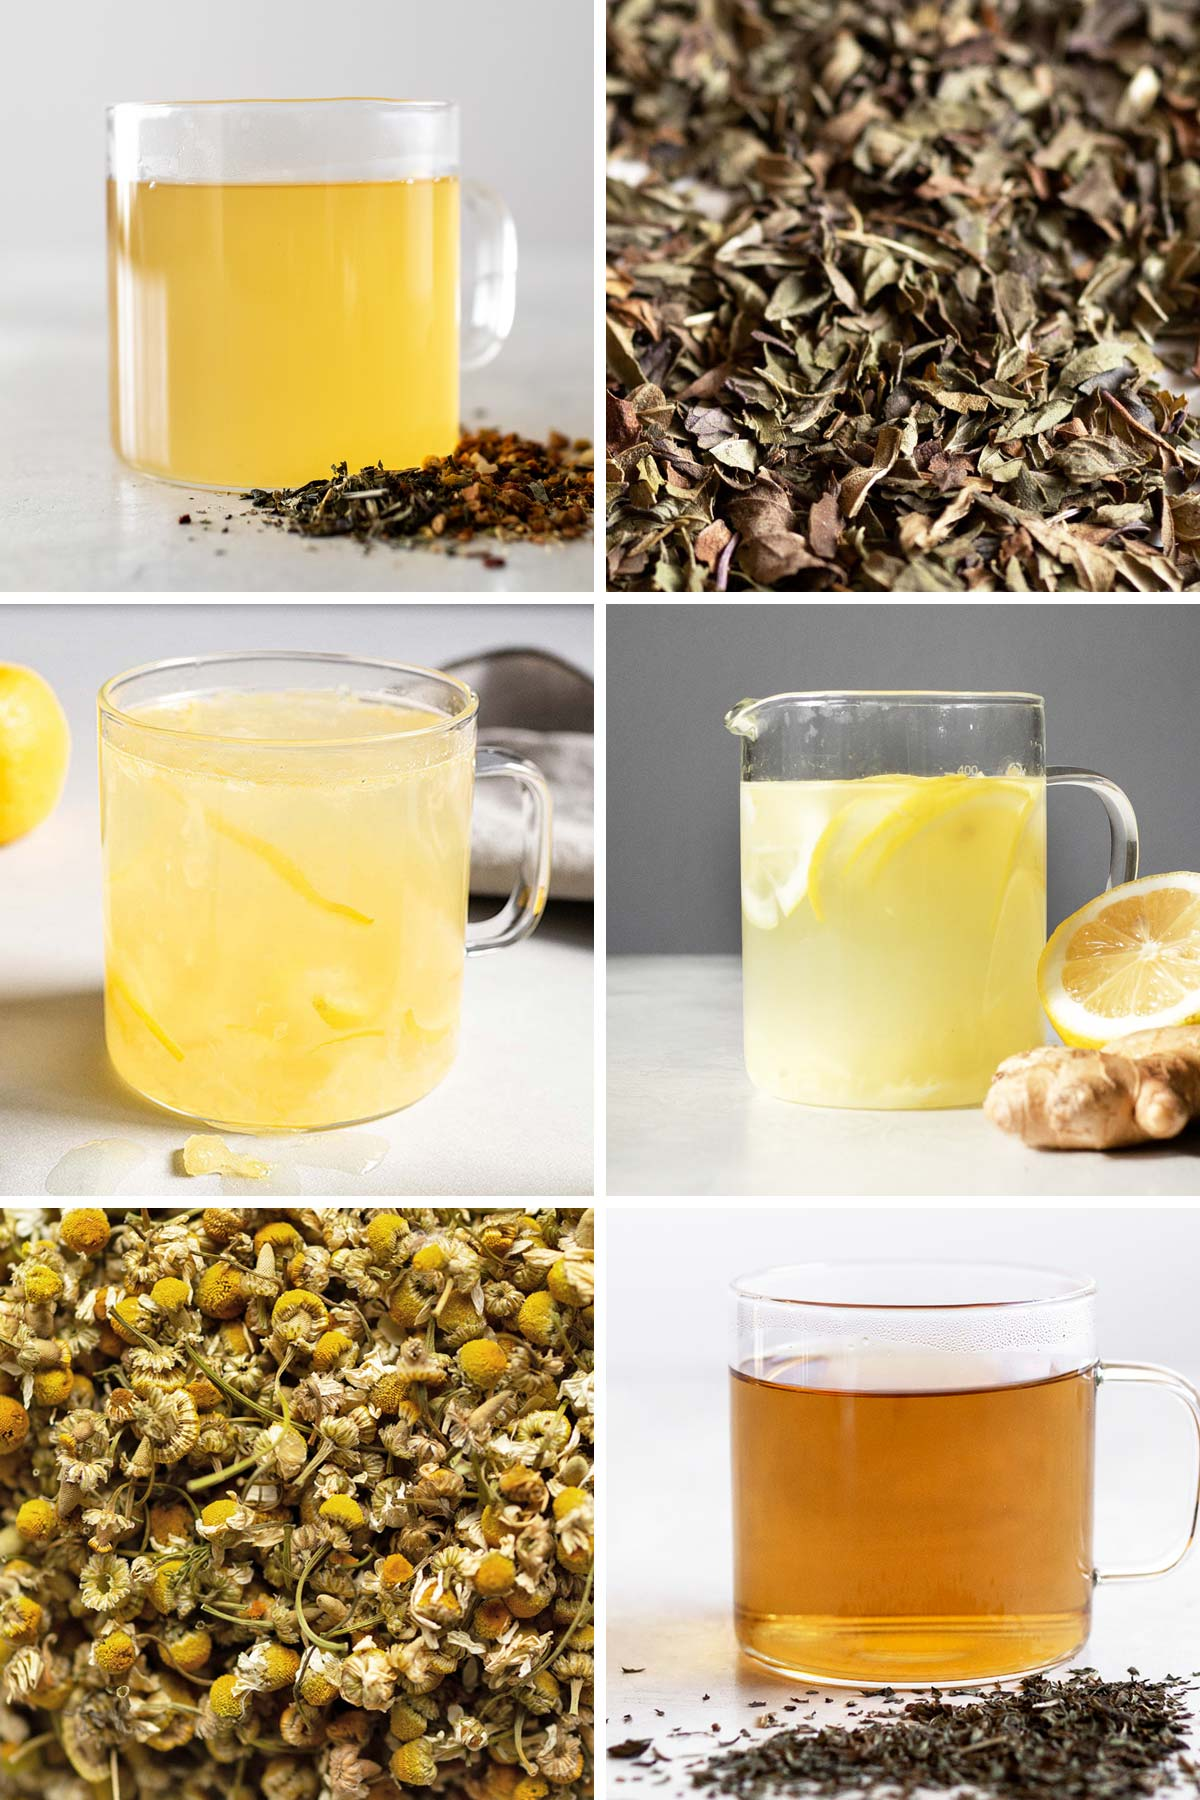 6 photos showing different teas in a glass mug and close up of tea leaves.